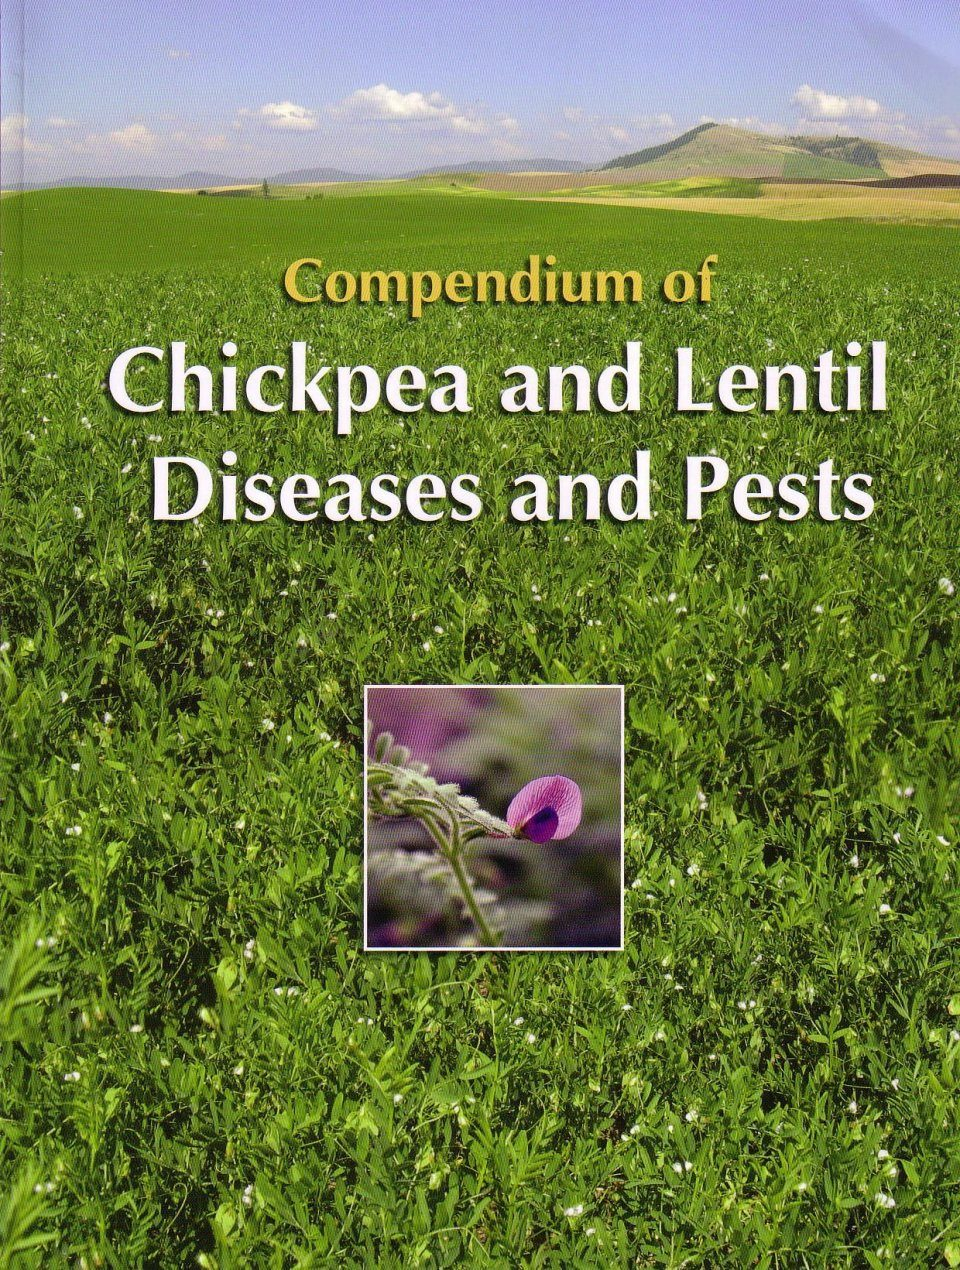 Compendium of Chickpea and Lentil Diseases and Pests